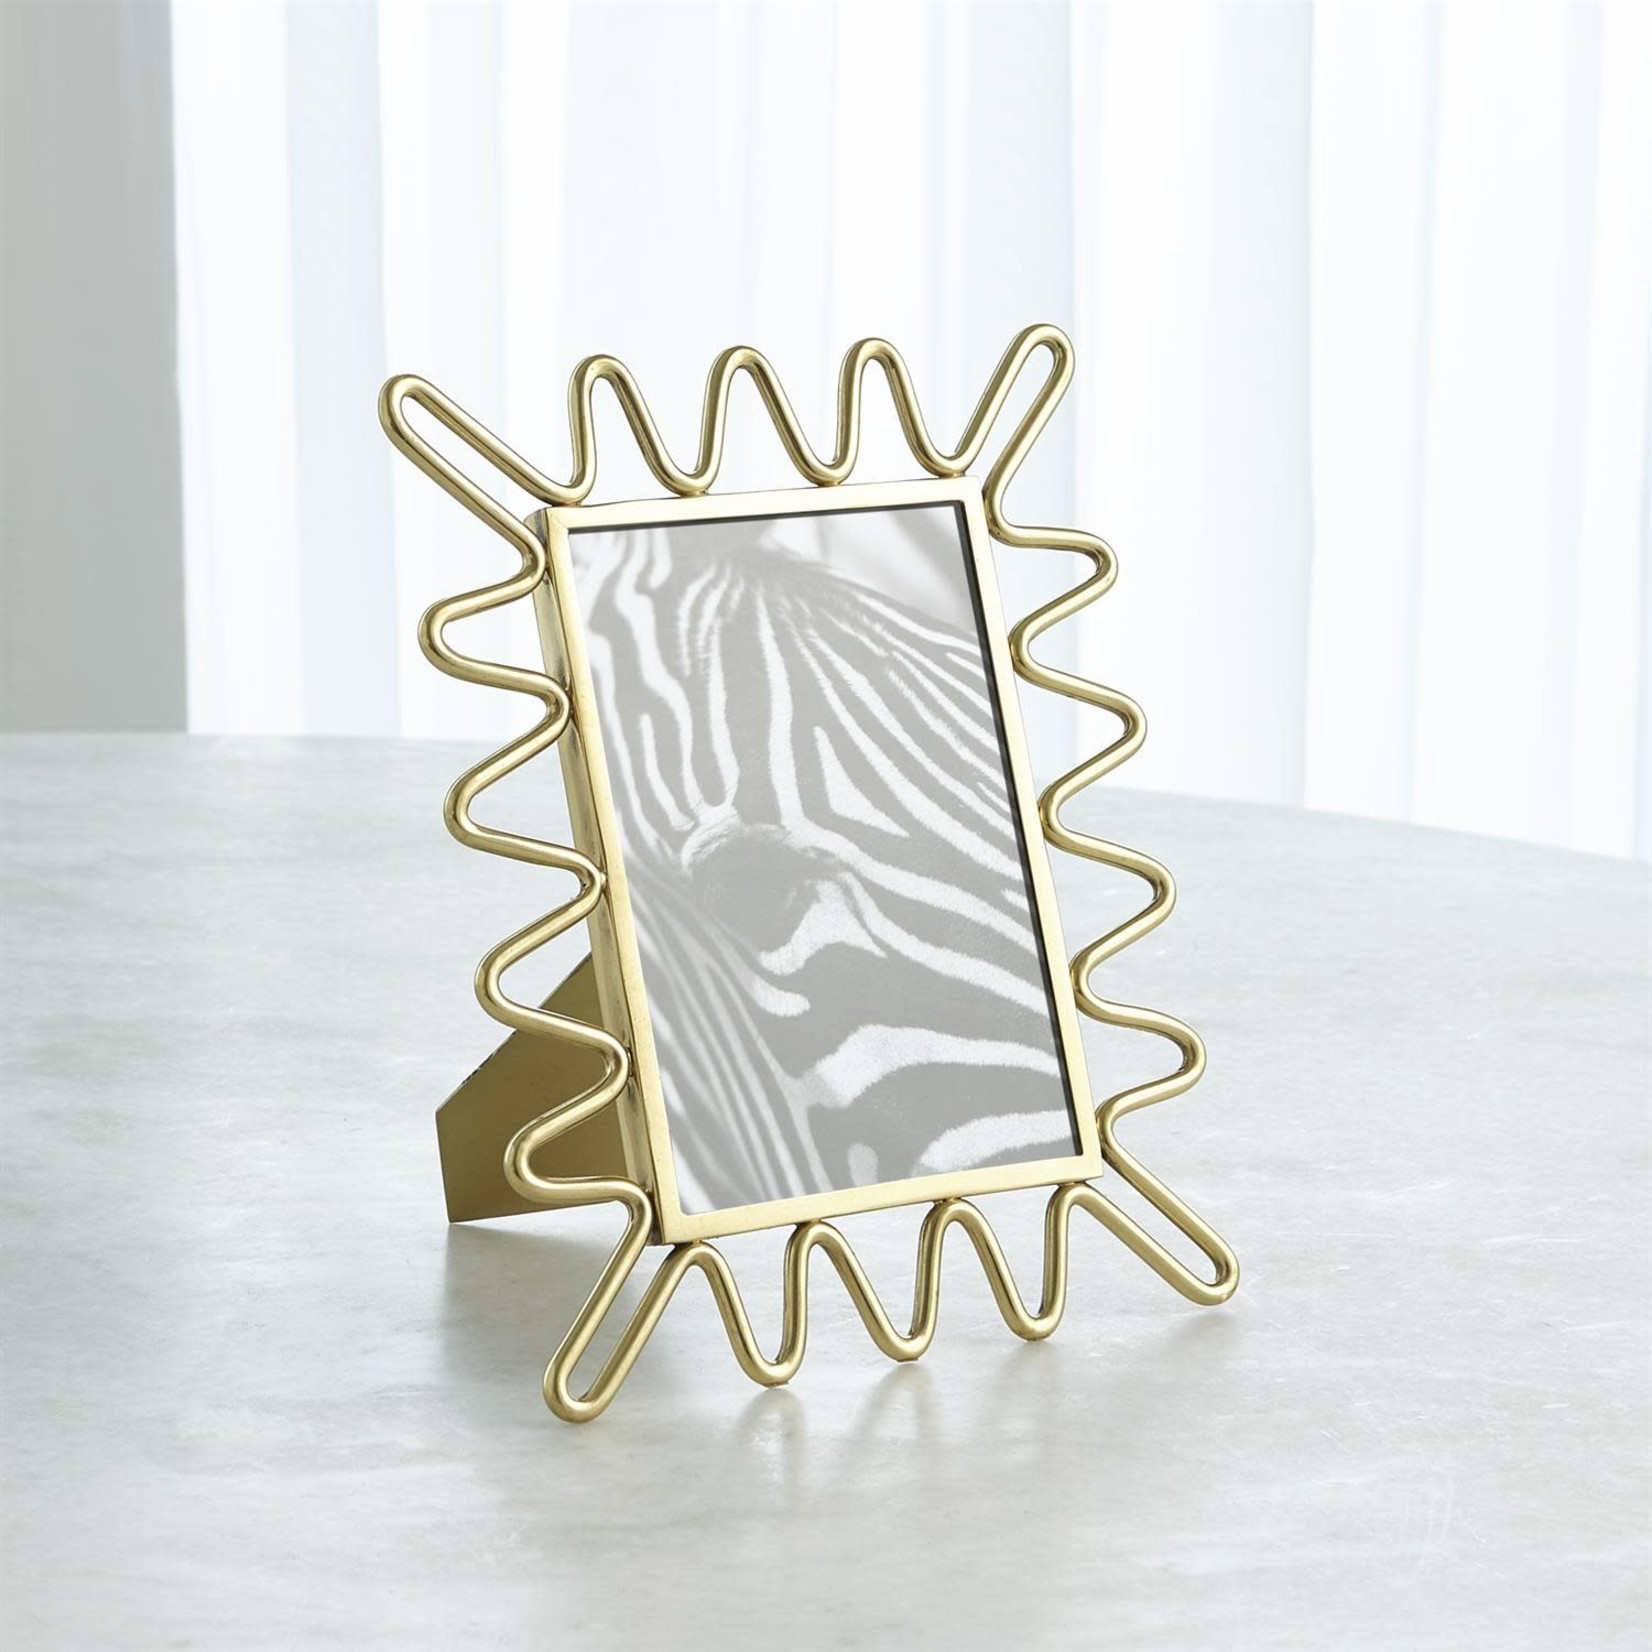 Ric Rac Picture Frame - Gold Small